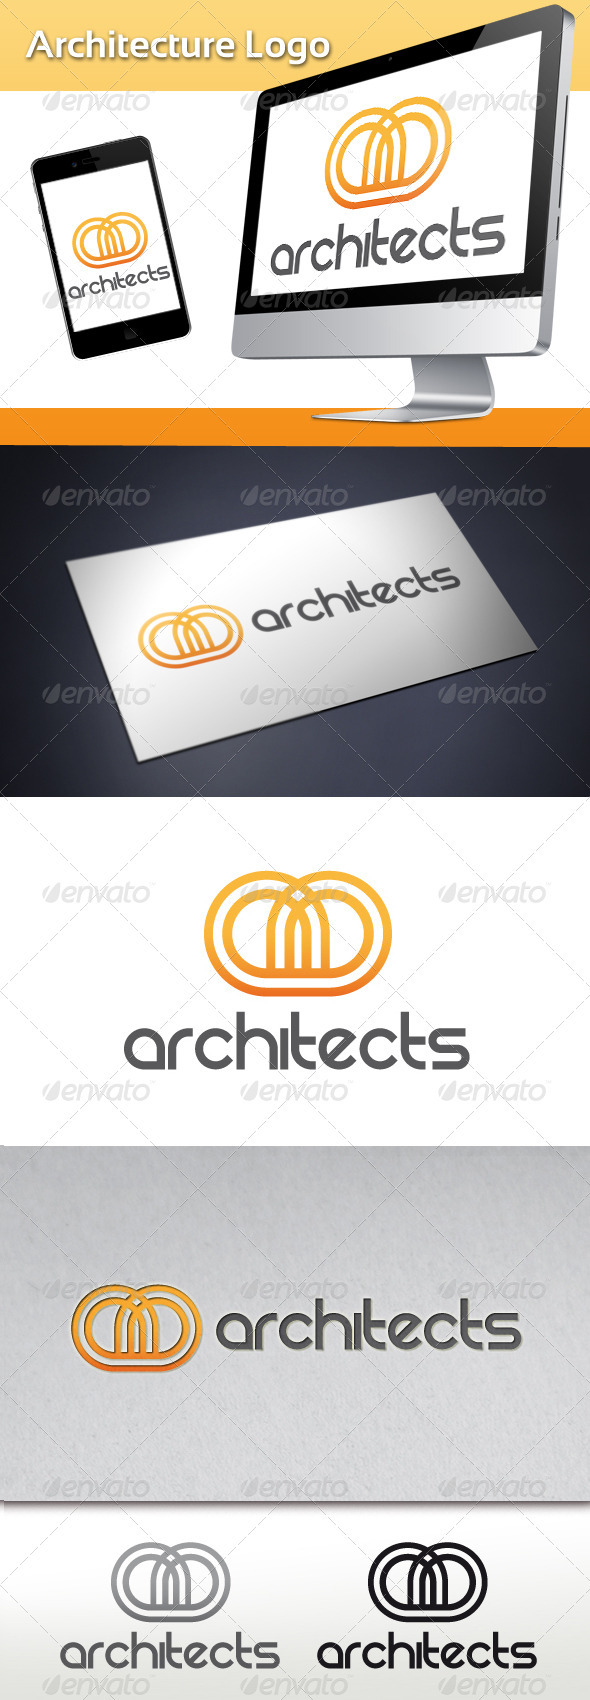 GraphicRiver Architecture Logo 3504862